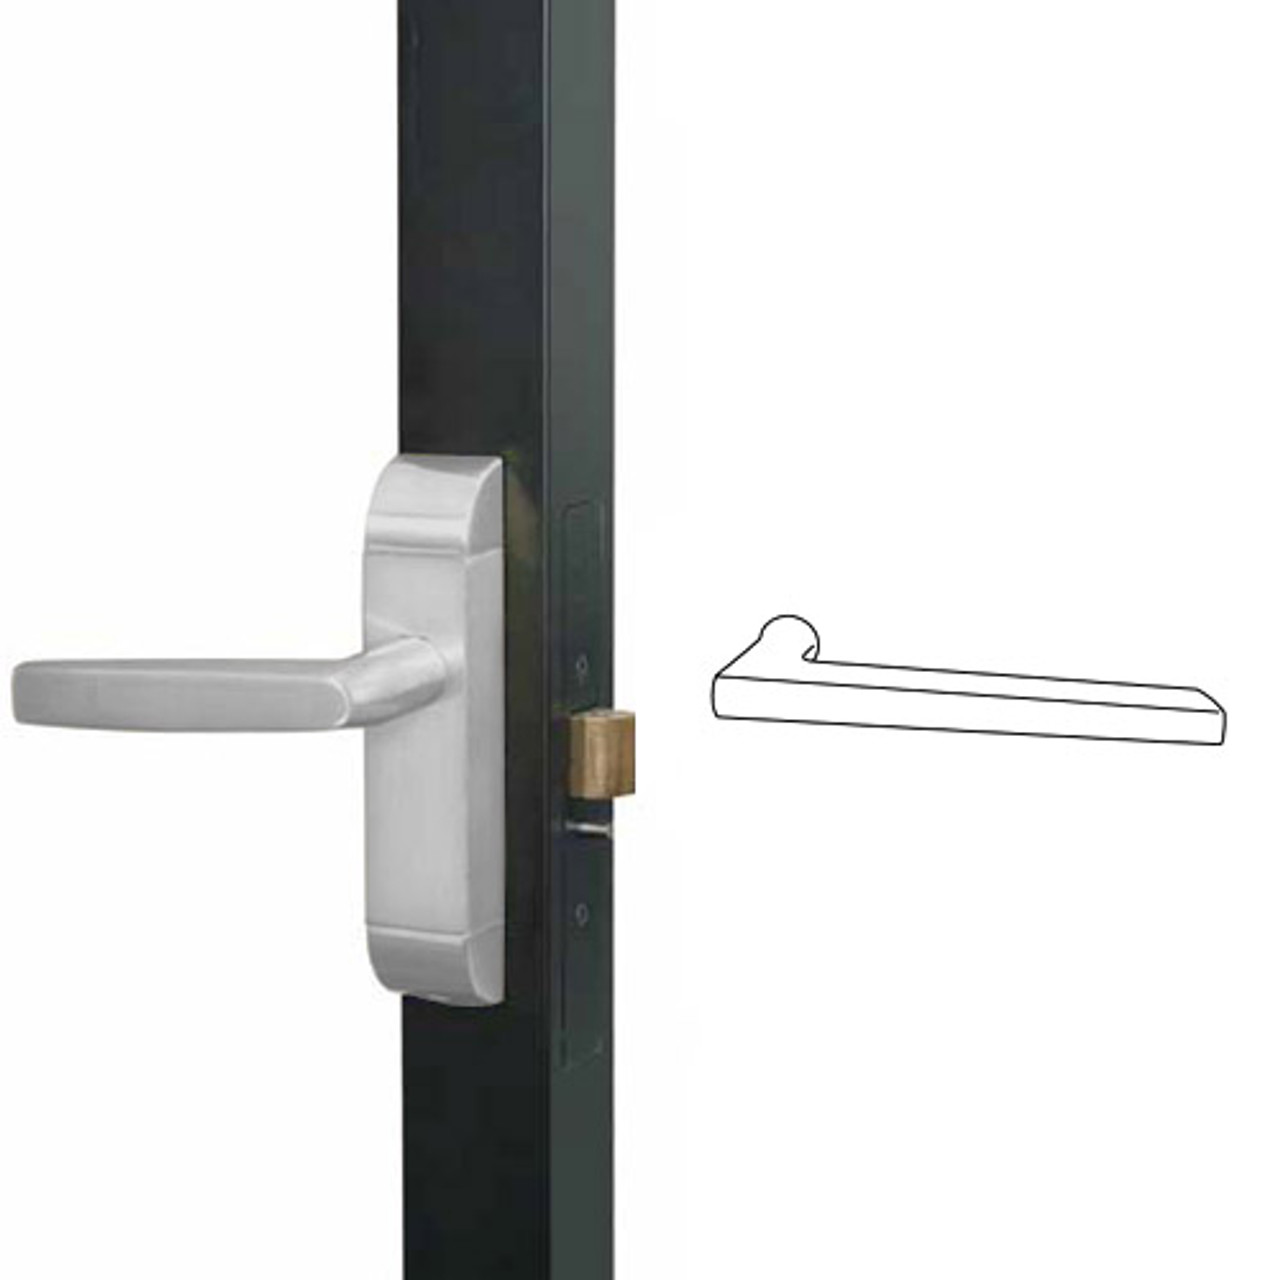 4600M-MD-651-US32 Adams Rite MD Designer Deadlatch handle in Bright Stainless Finish